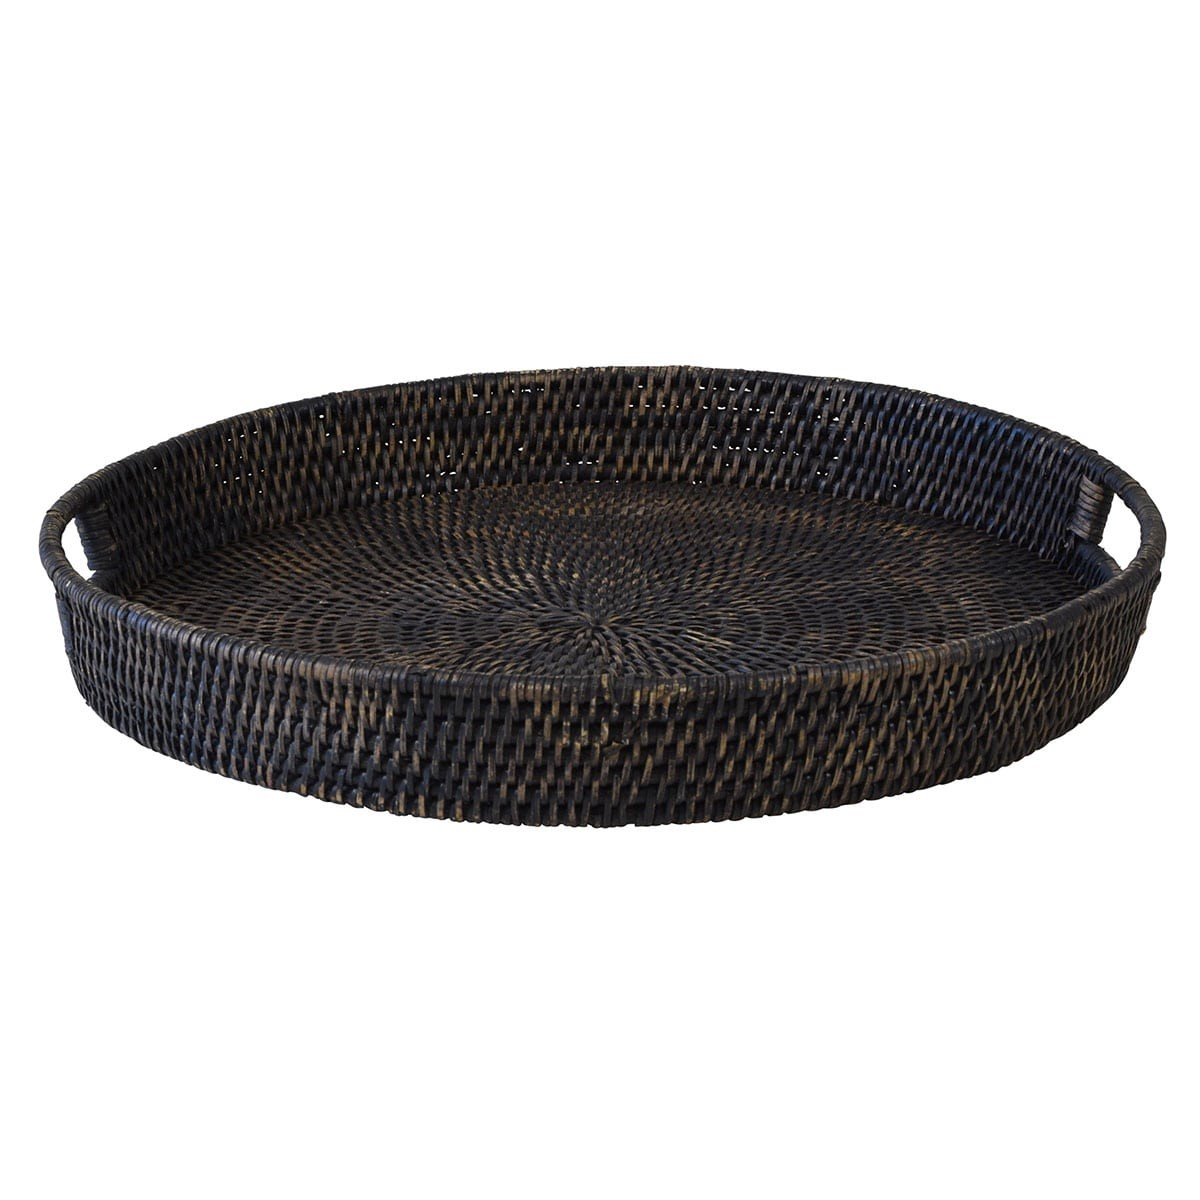 Savannah Rattan Tray, Round, Small, Charcoal